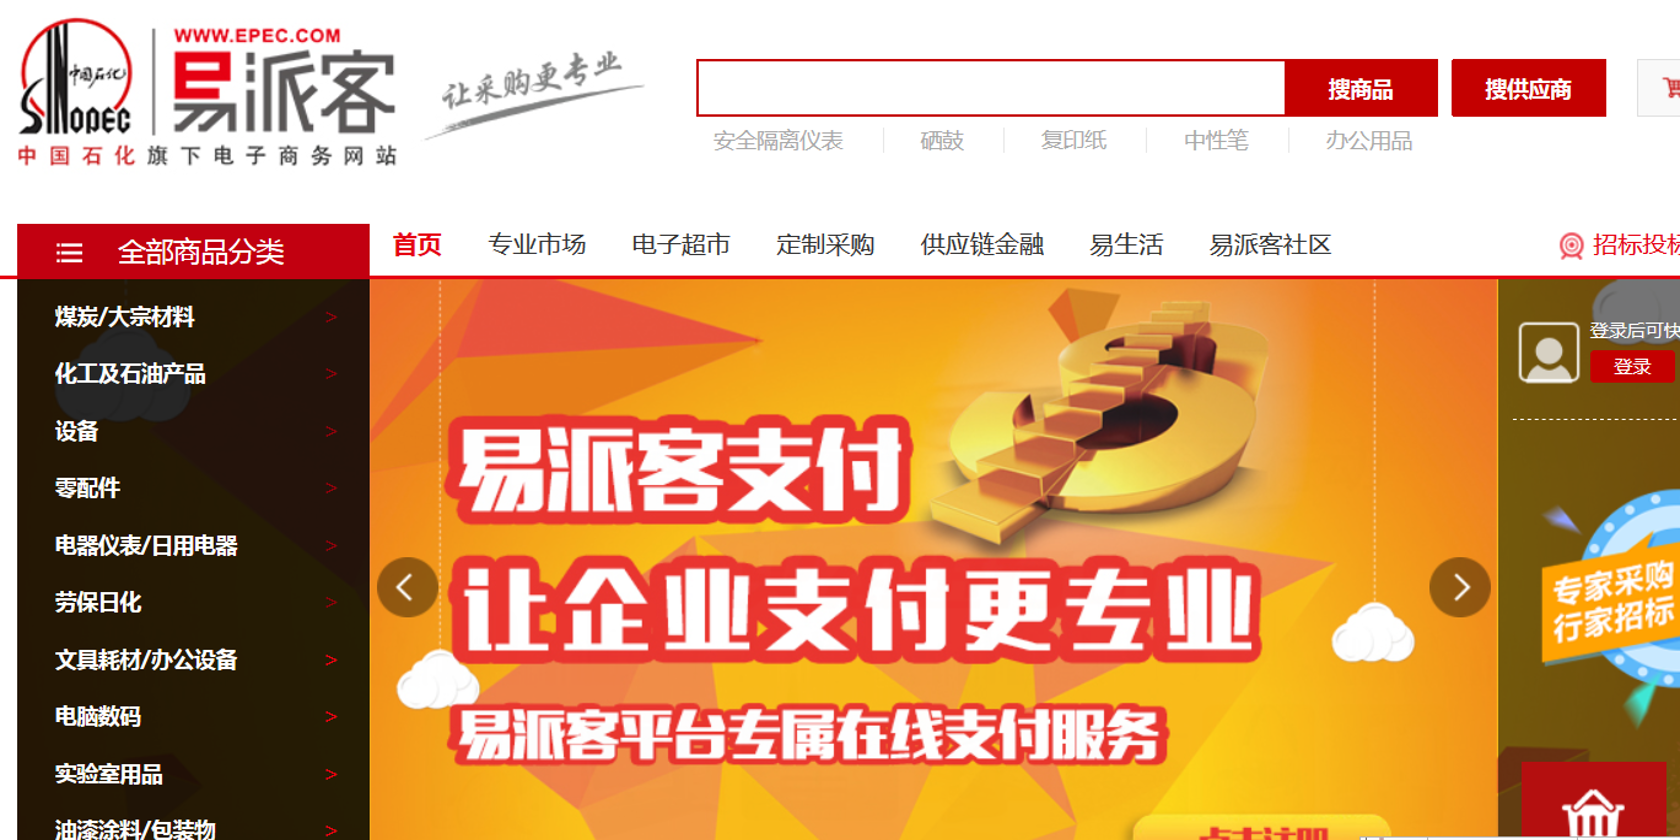 Petrochemical E-Commerce Gains Popularity in China